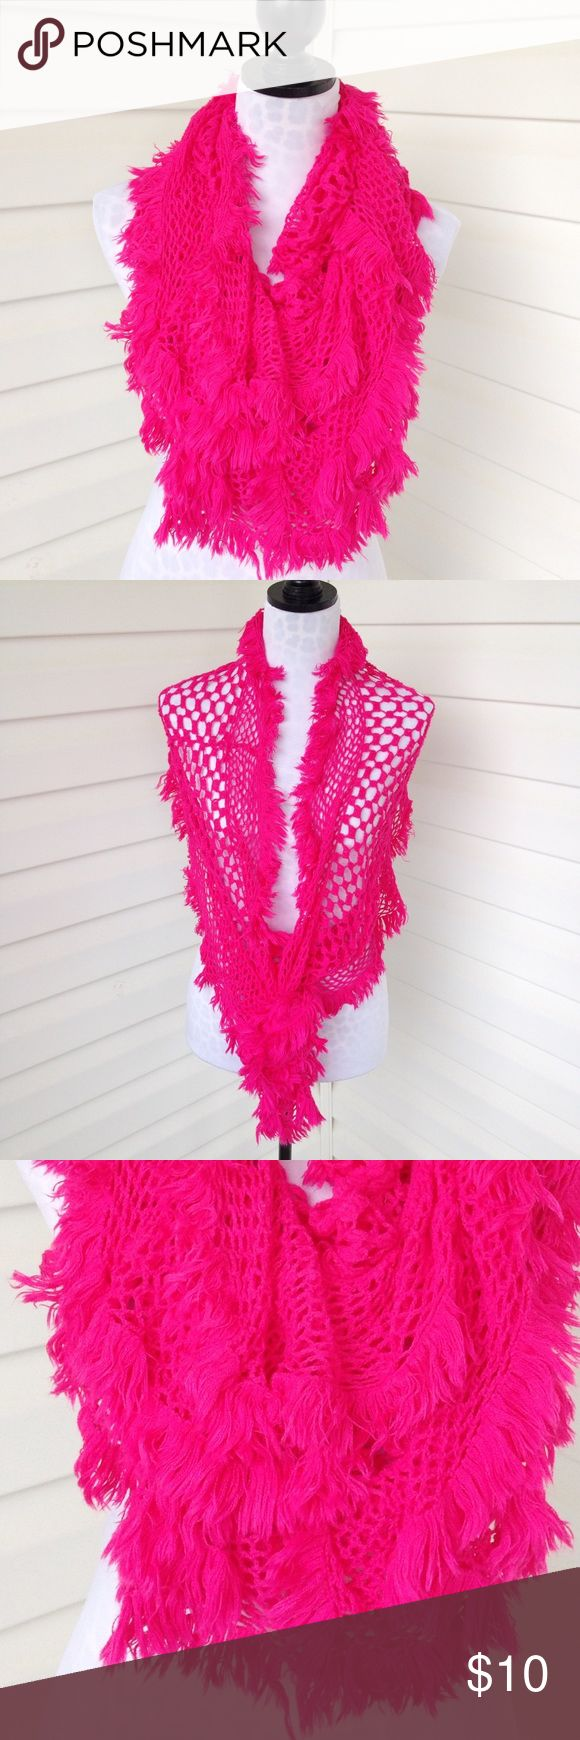 """Stretchy handmade hot pink scarf Stretchy handmade hot pink scarf  Very stretchy Can be double looped and worn around neck or worn over shoulders like a shrug.   Approximate measurements: 45"""" length loosely hanging.   Material unknown but very soft.   No visible flaws. Great condition Accessories Scarves & Wraps"""